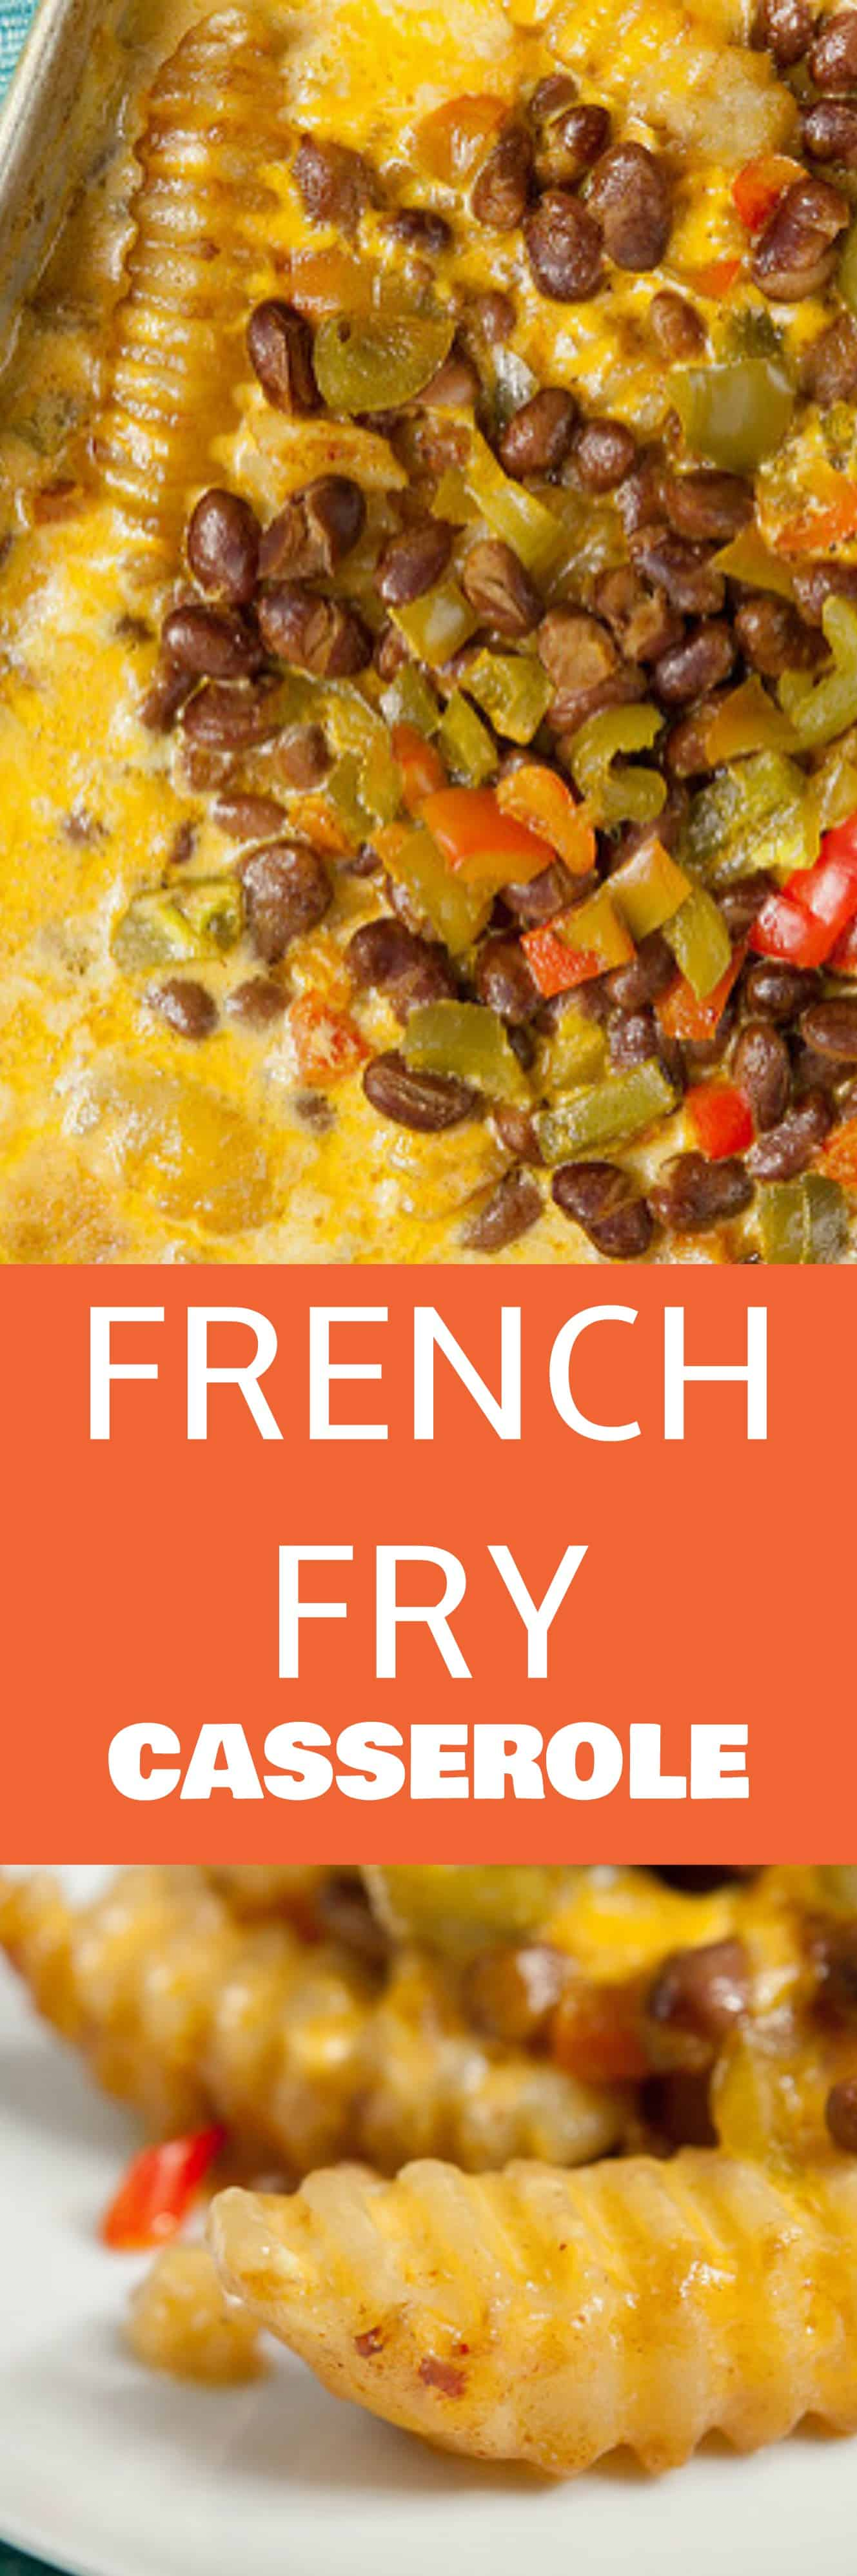 CHEESY French Fry Casserole! This easy baked casserole recipe is made with frozen french fries and shredded cheddar cheese. Your entire family is going to love this loaded dinner casserole!